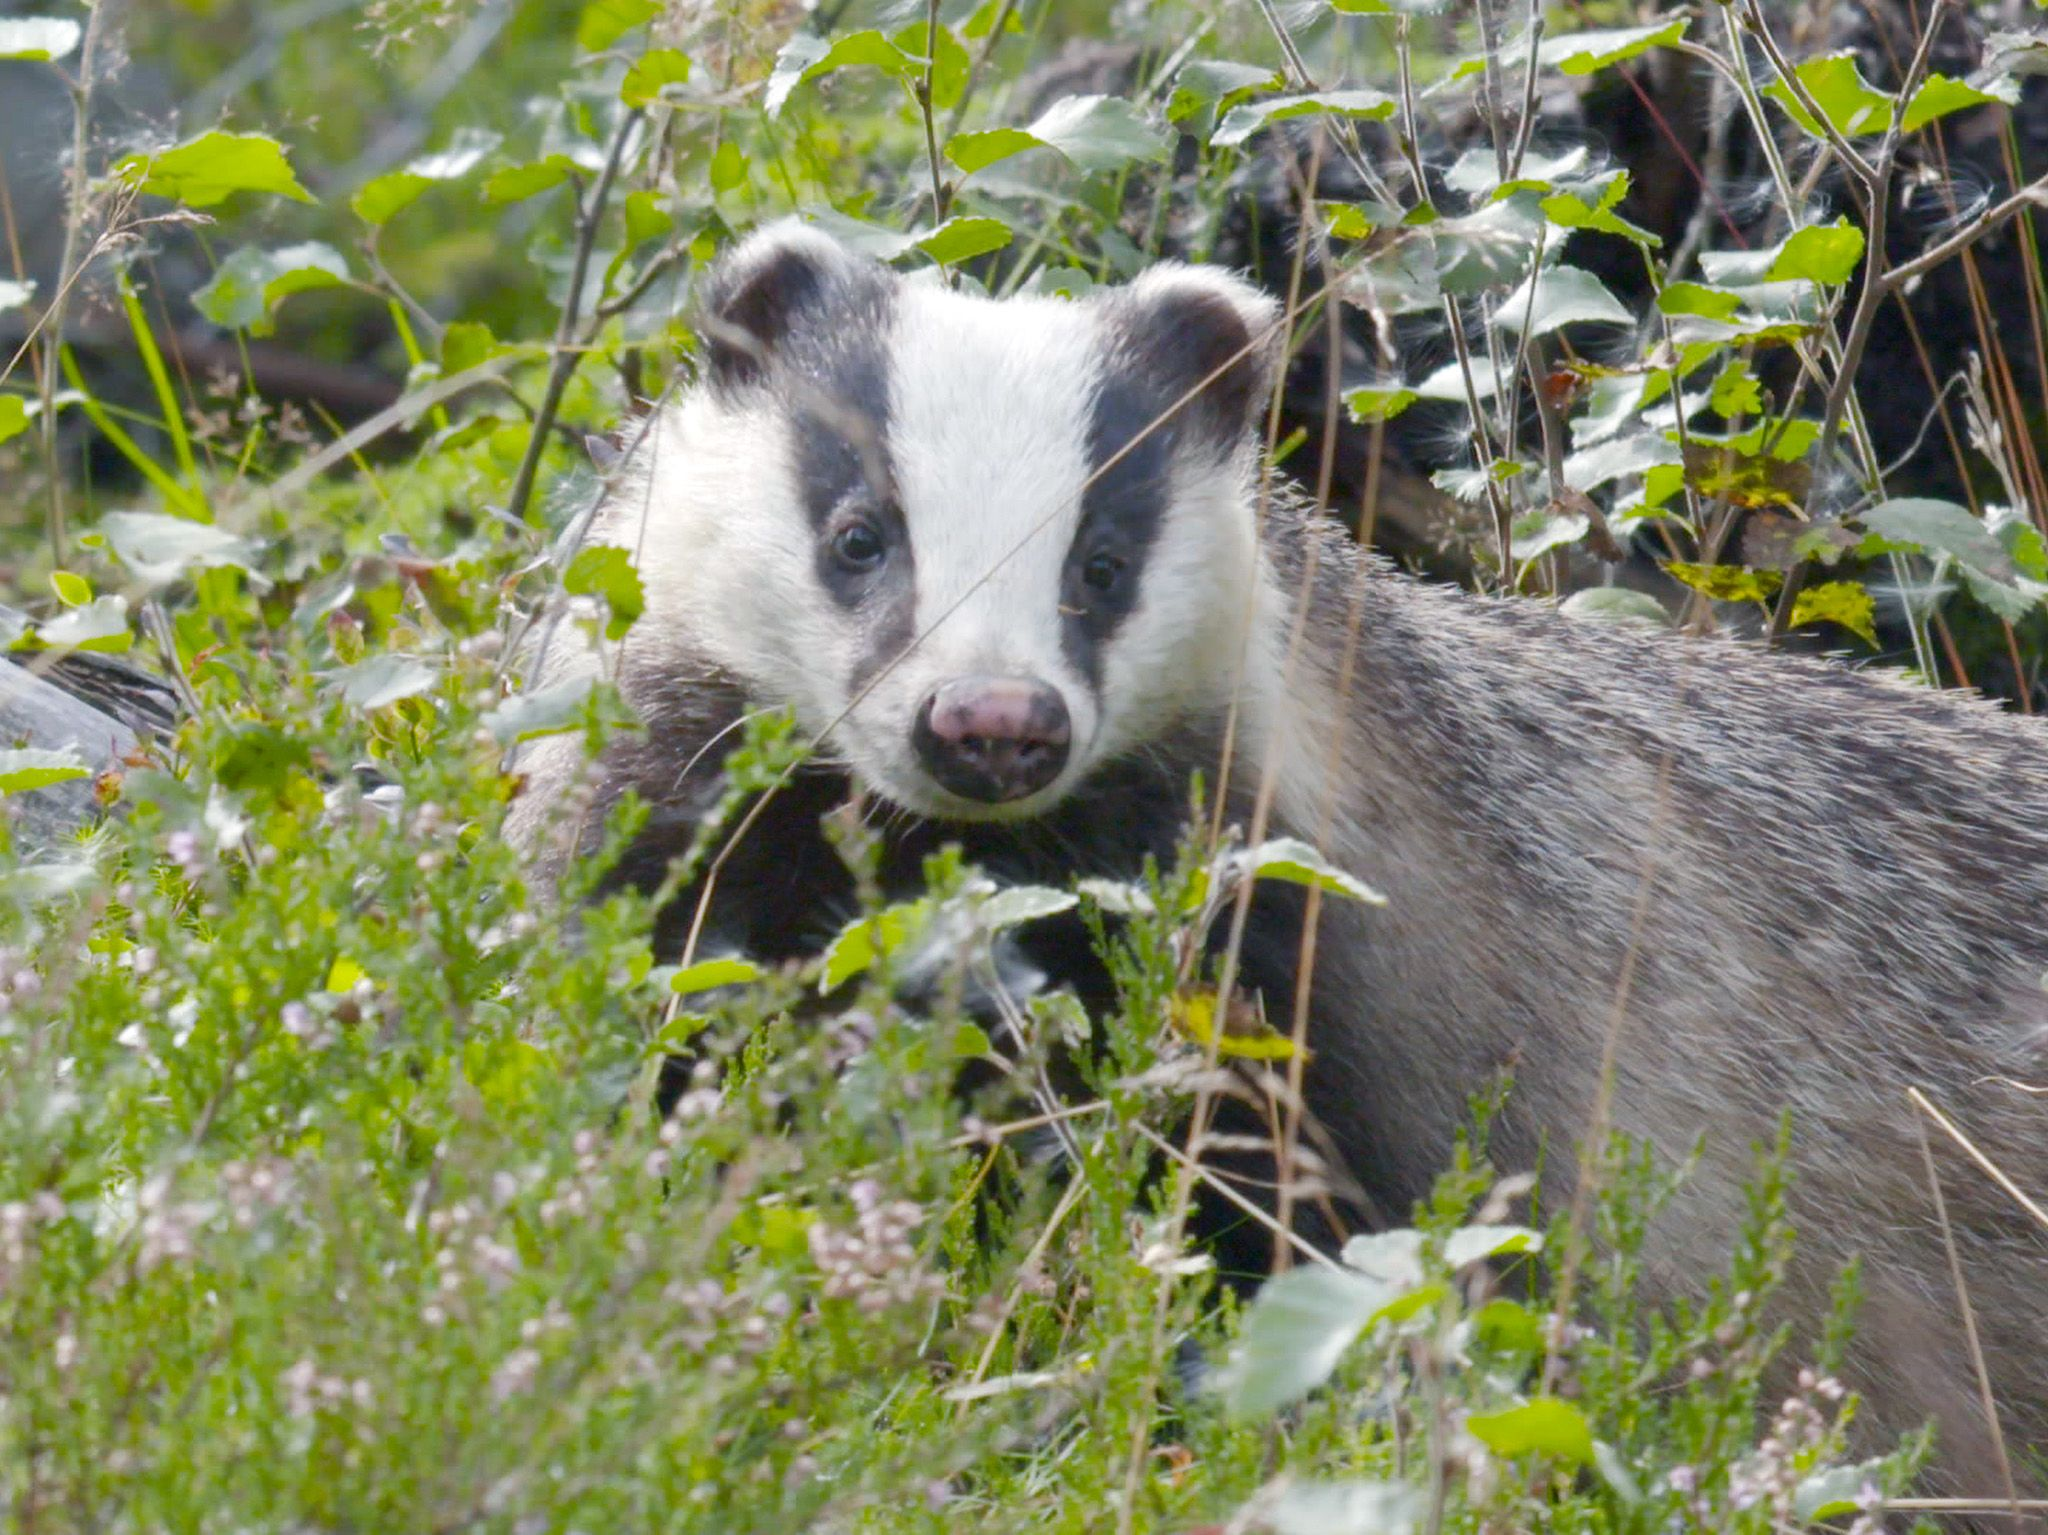 Badger in the bushes. This image is from Wild Scandinavia. [Photo of the day - September 2020]